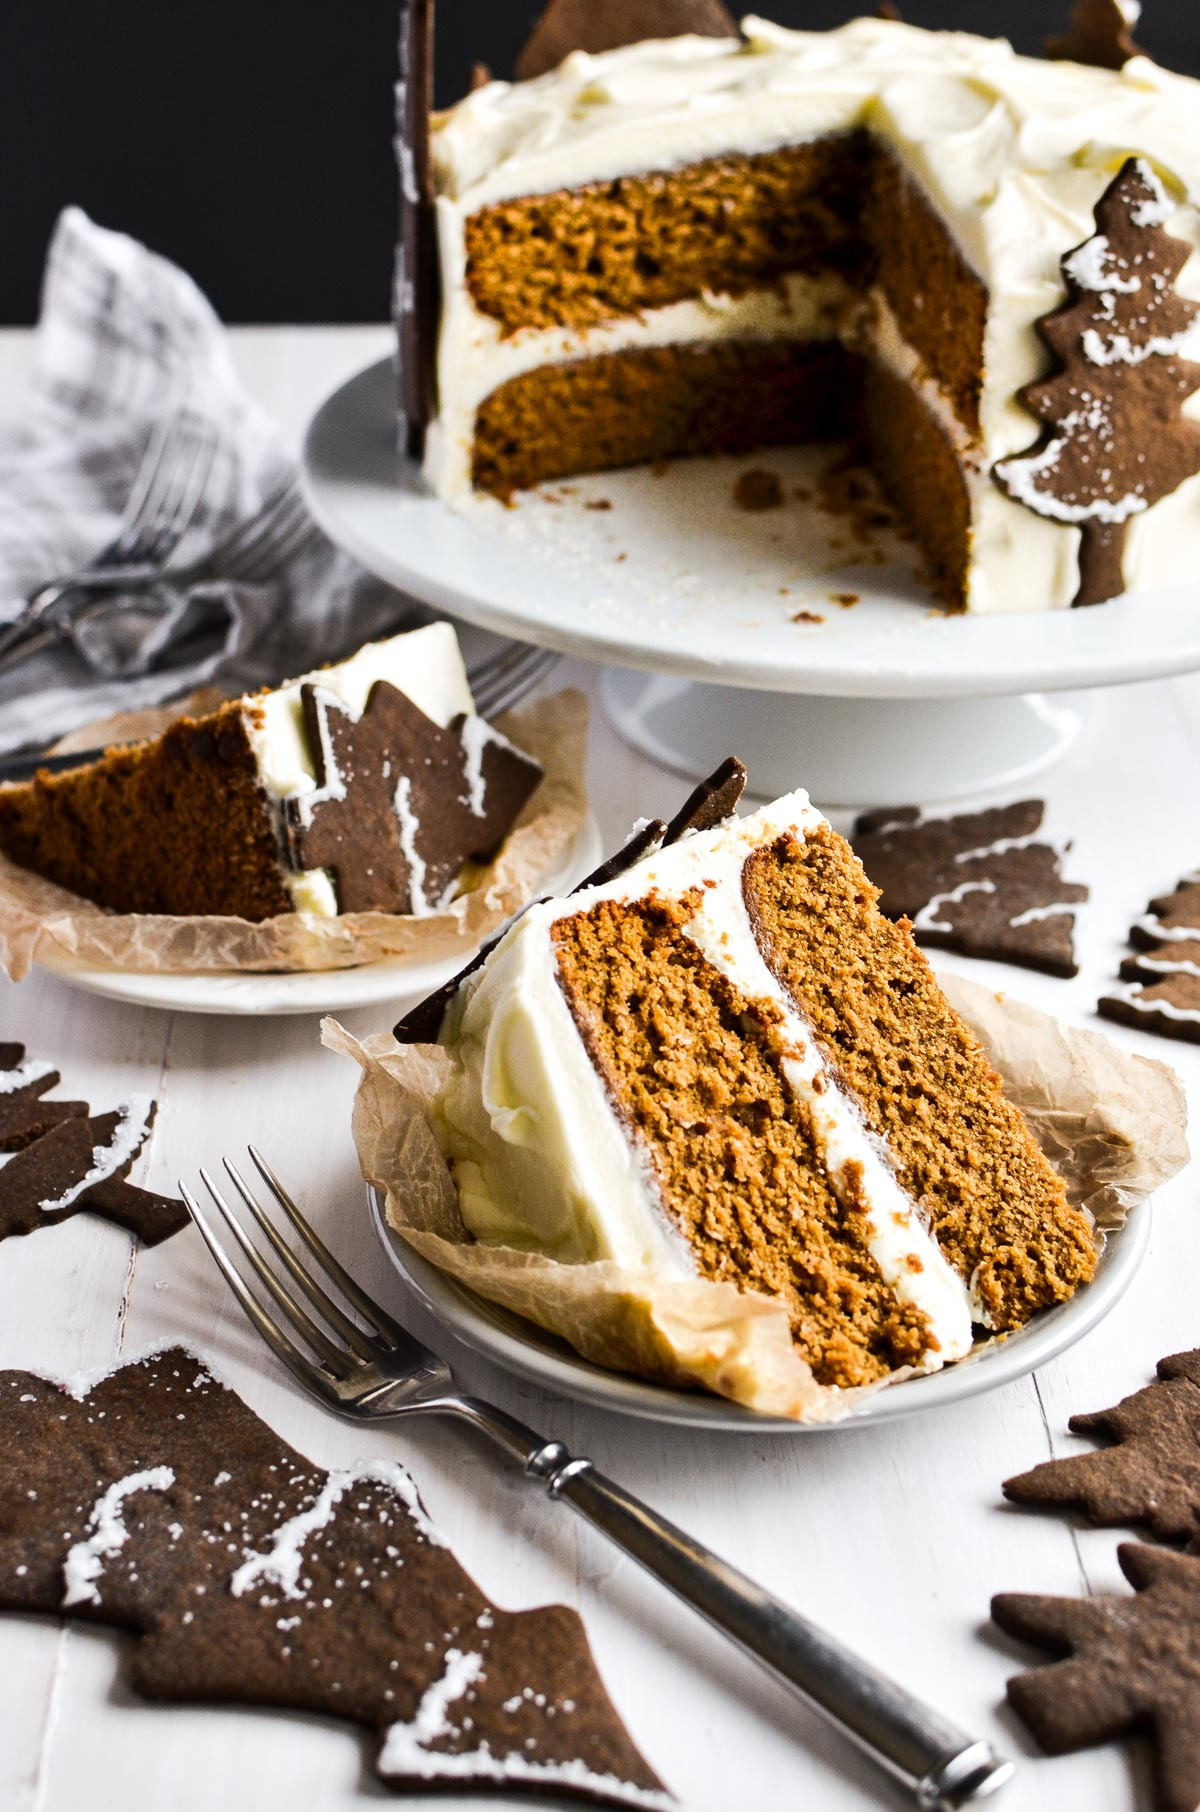 A piece of cake on a plate, with gingerbread